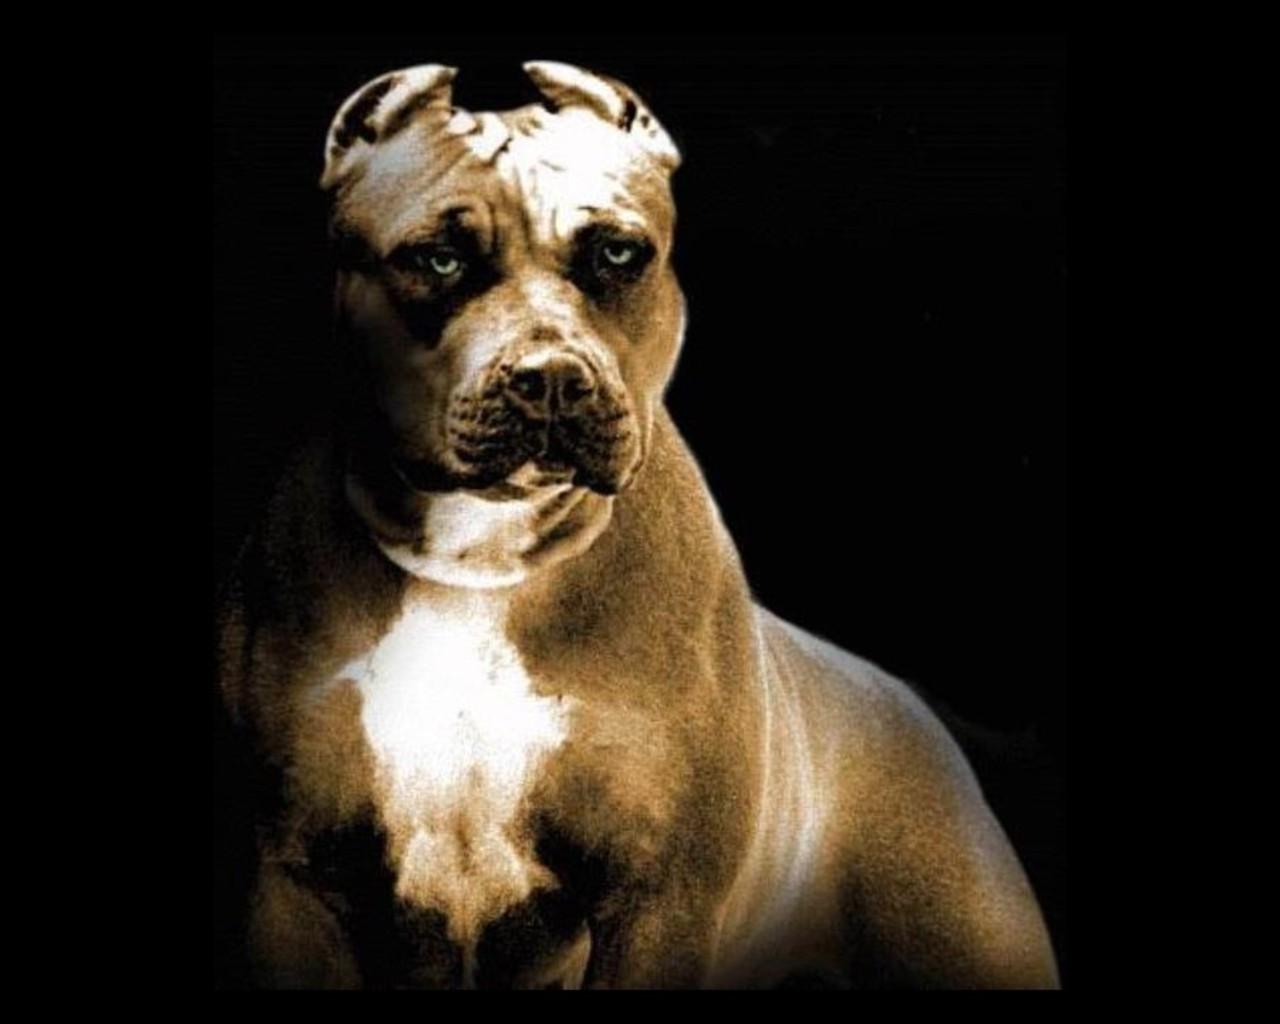 19246 download wallpaper Animals, Dogs screensavers and pictures for free